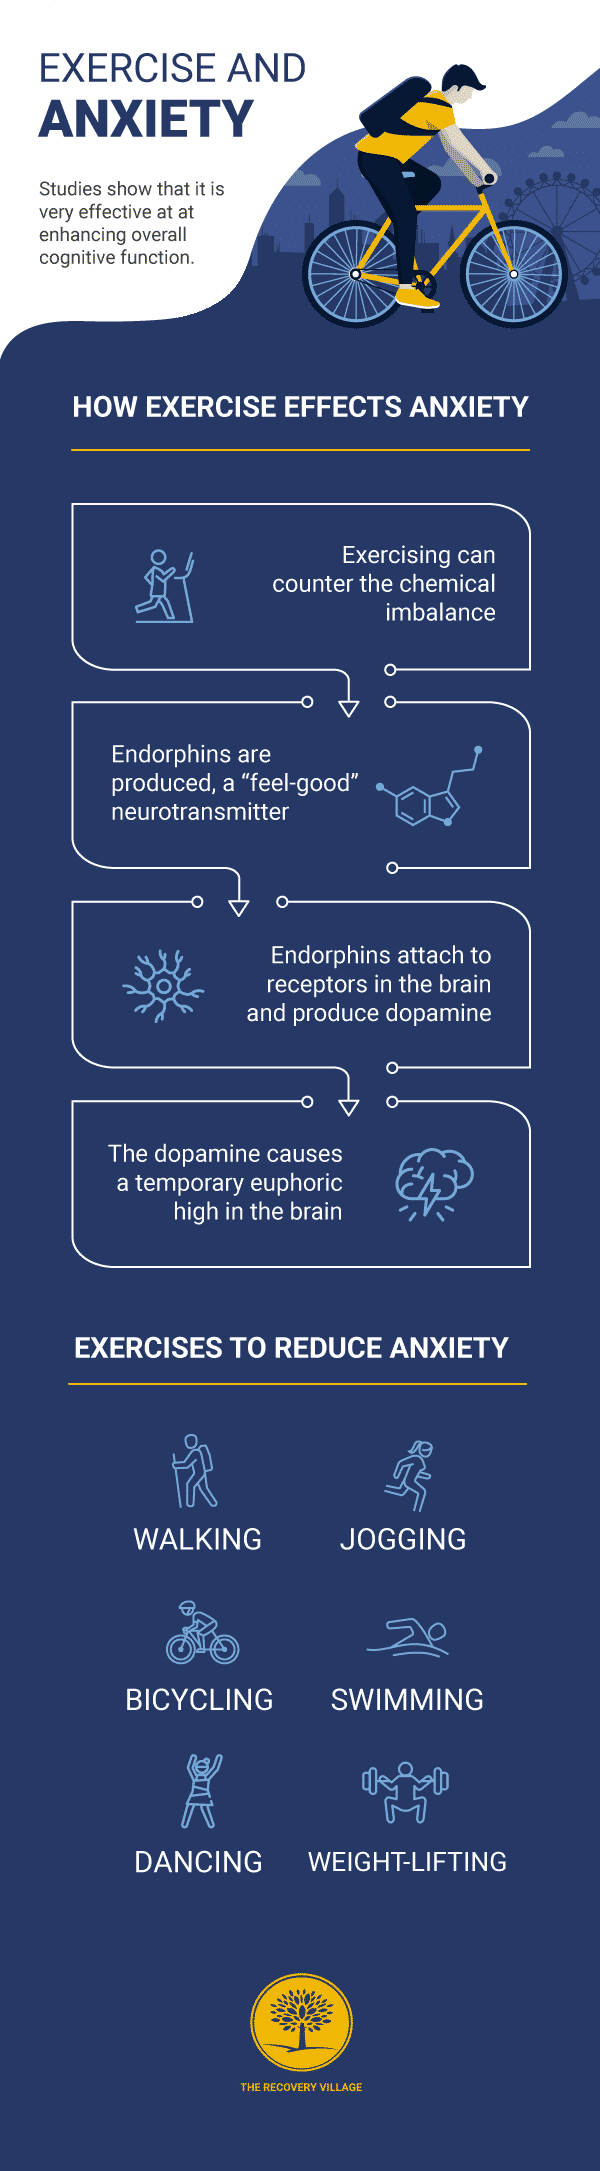 exercise and anxiety full infographic